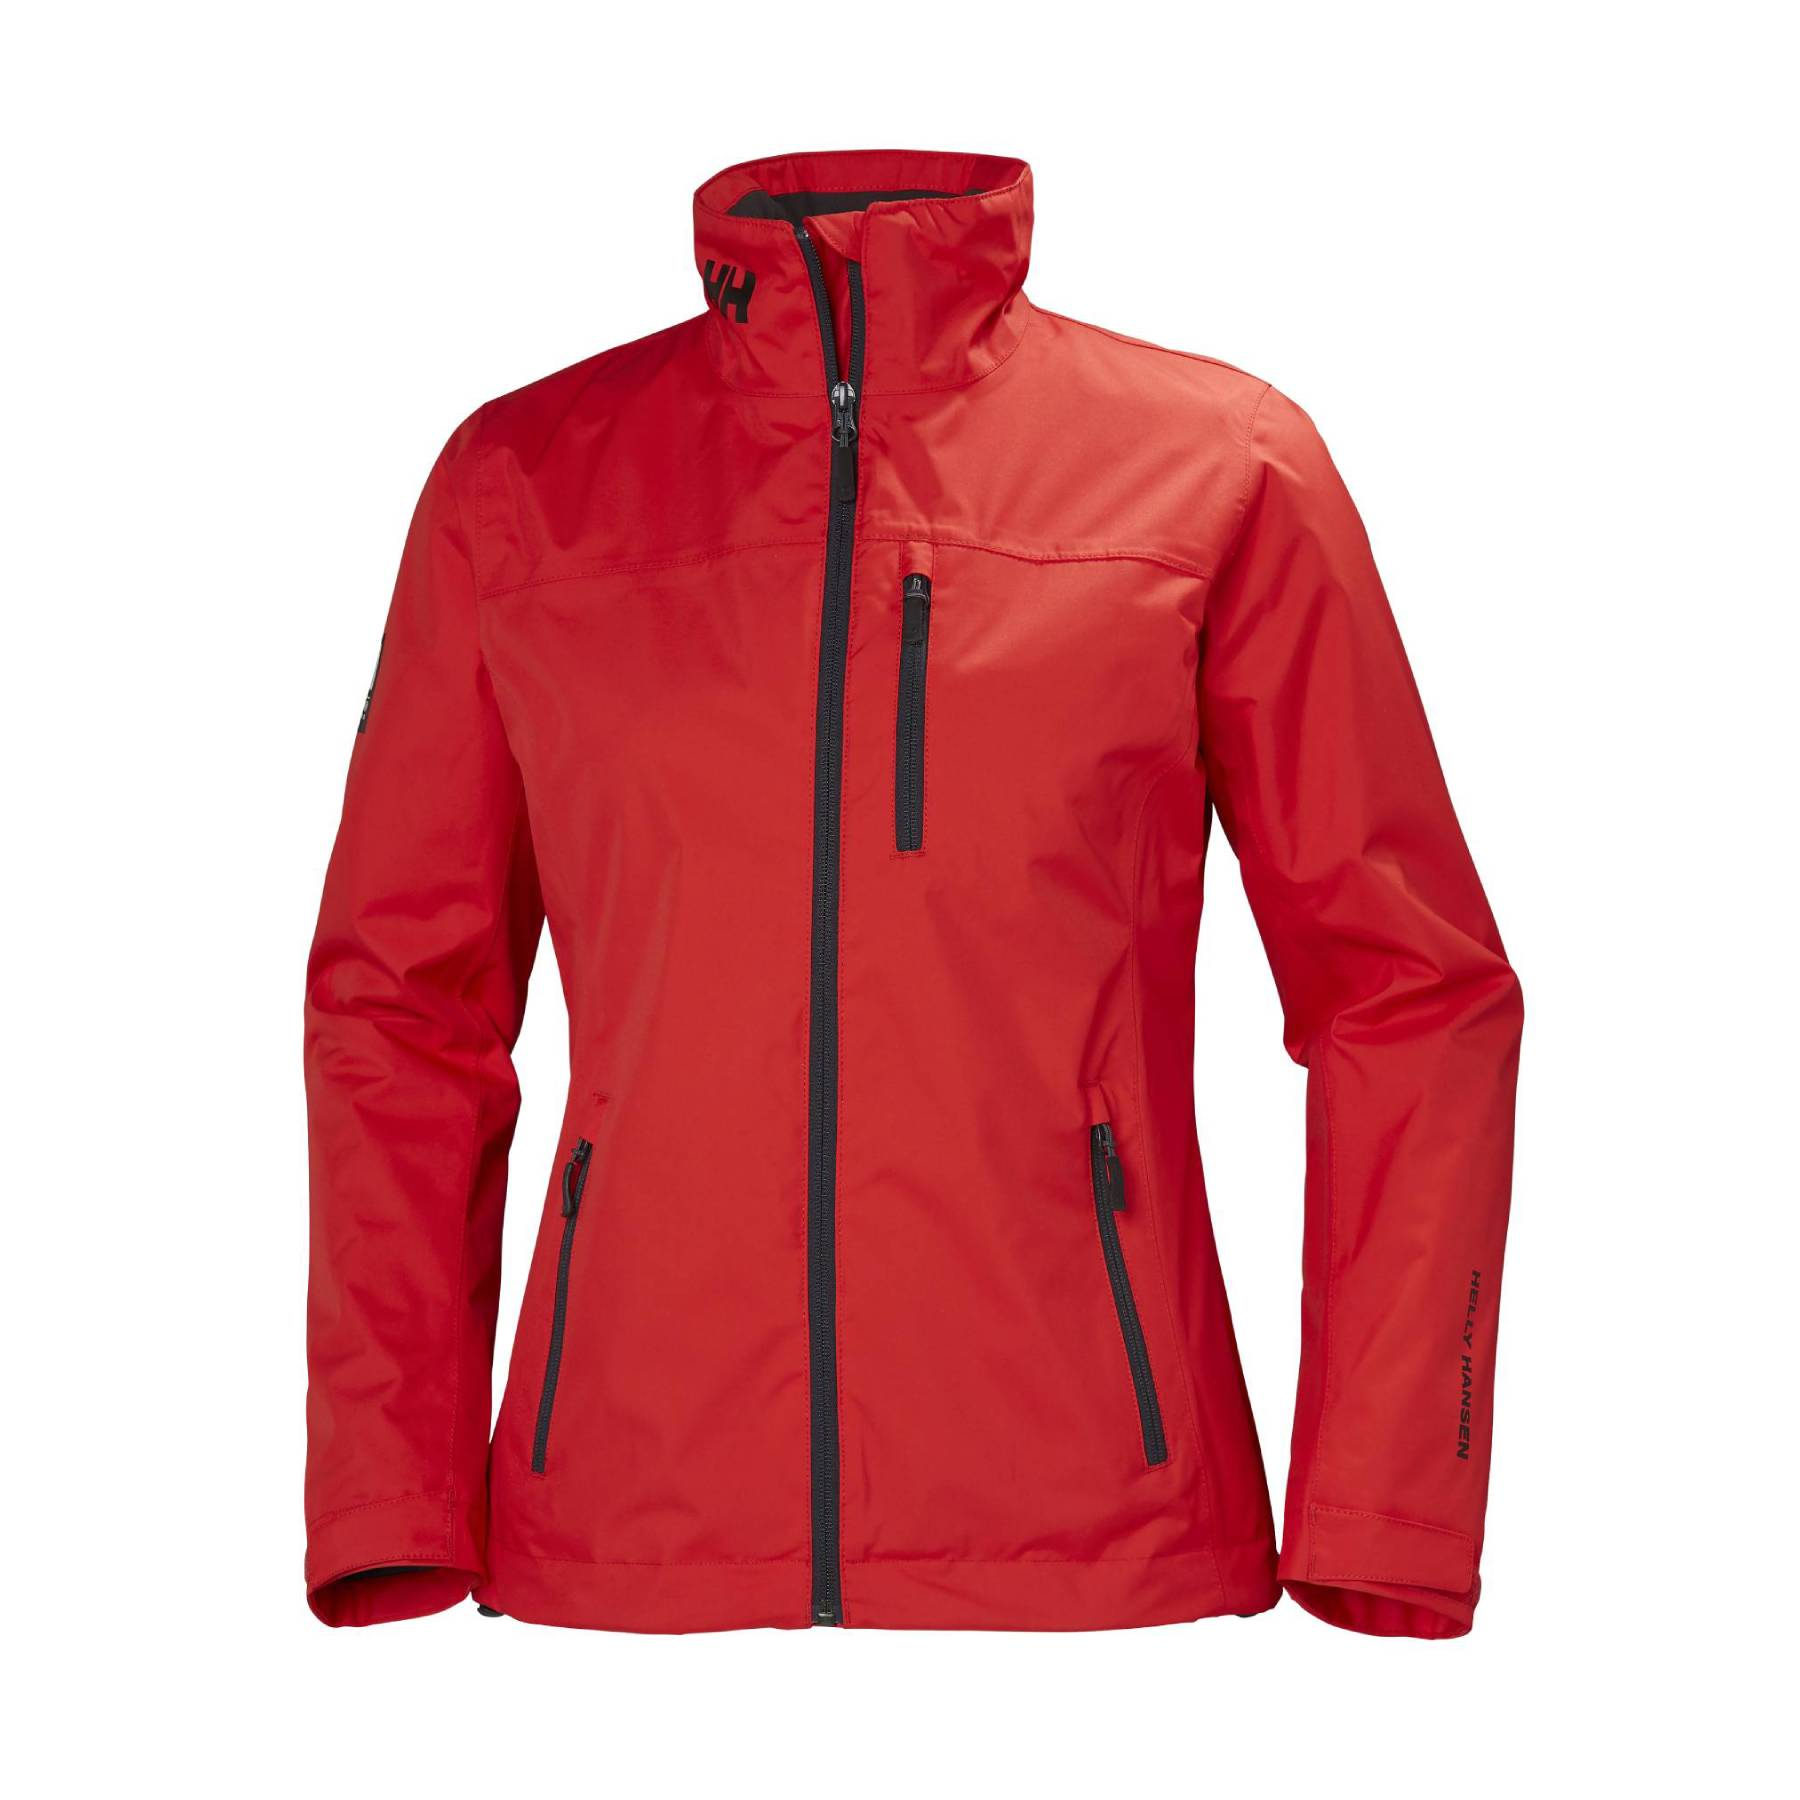 Women's Crew Midlayer Jacket